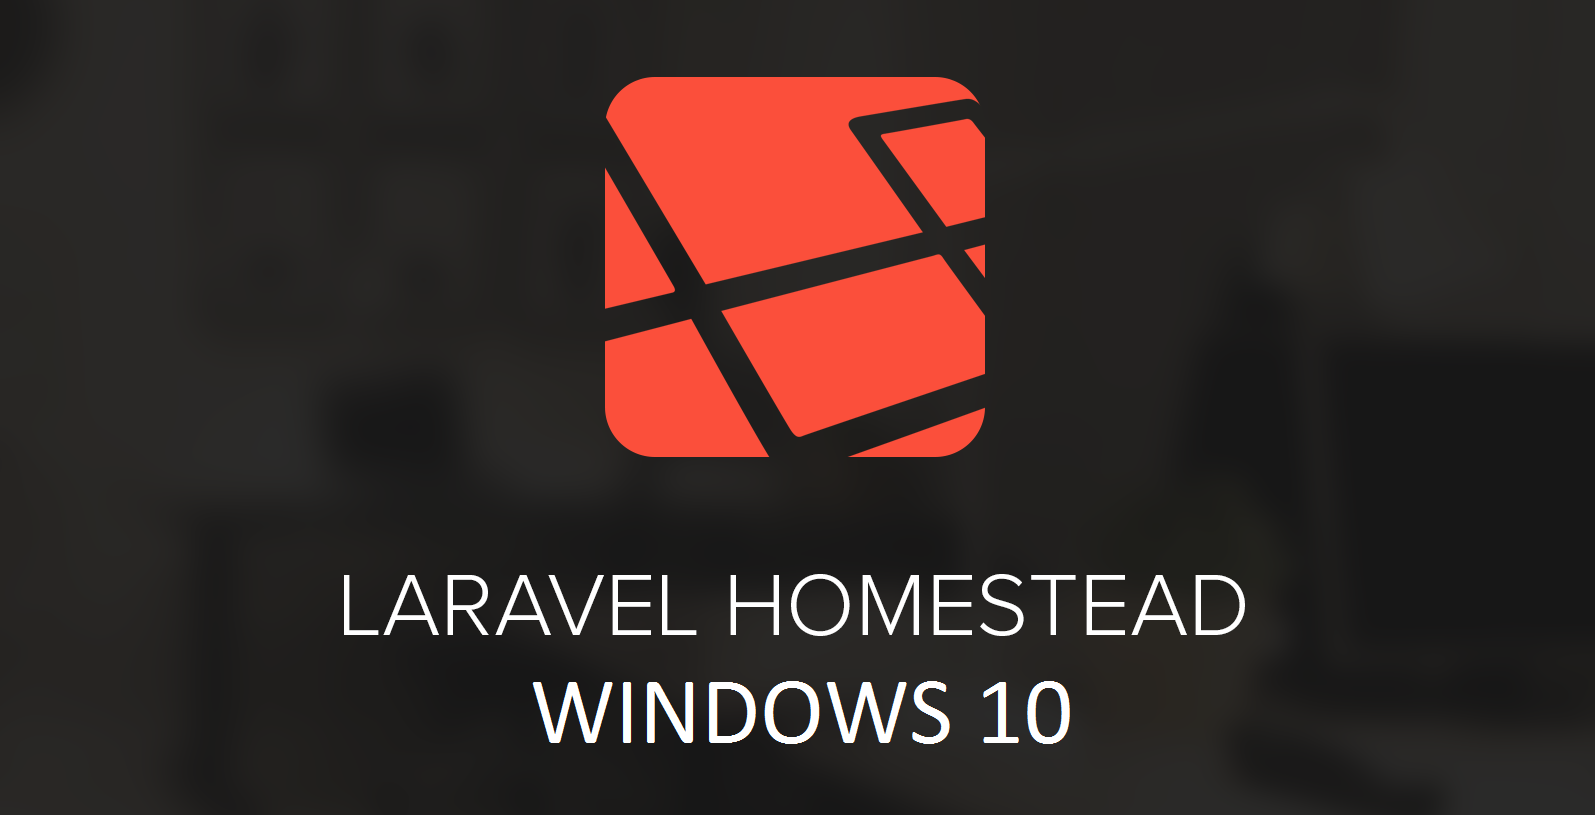 Laravel Homestead with Windows 10 Step by Step setup procedure with